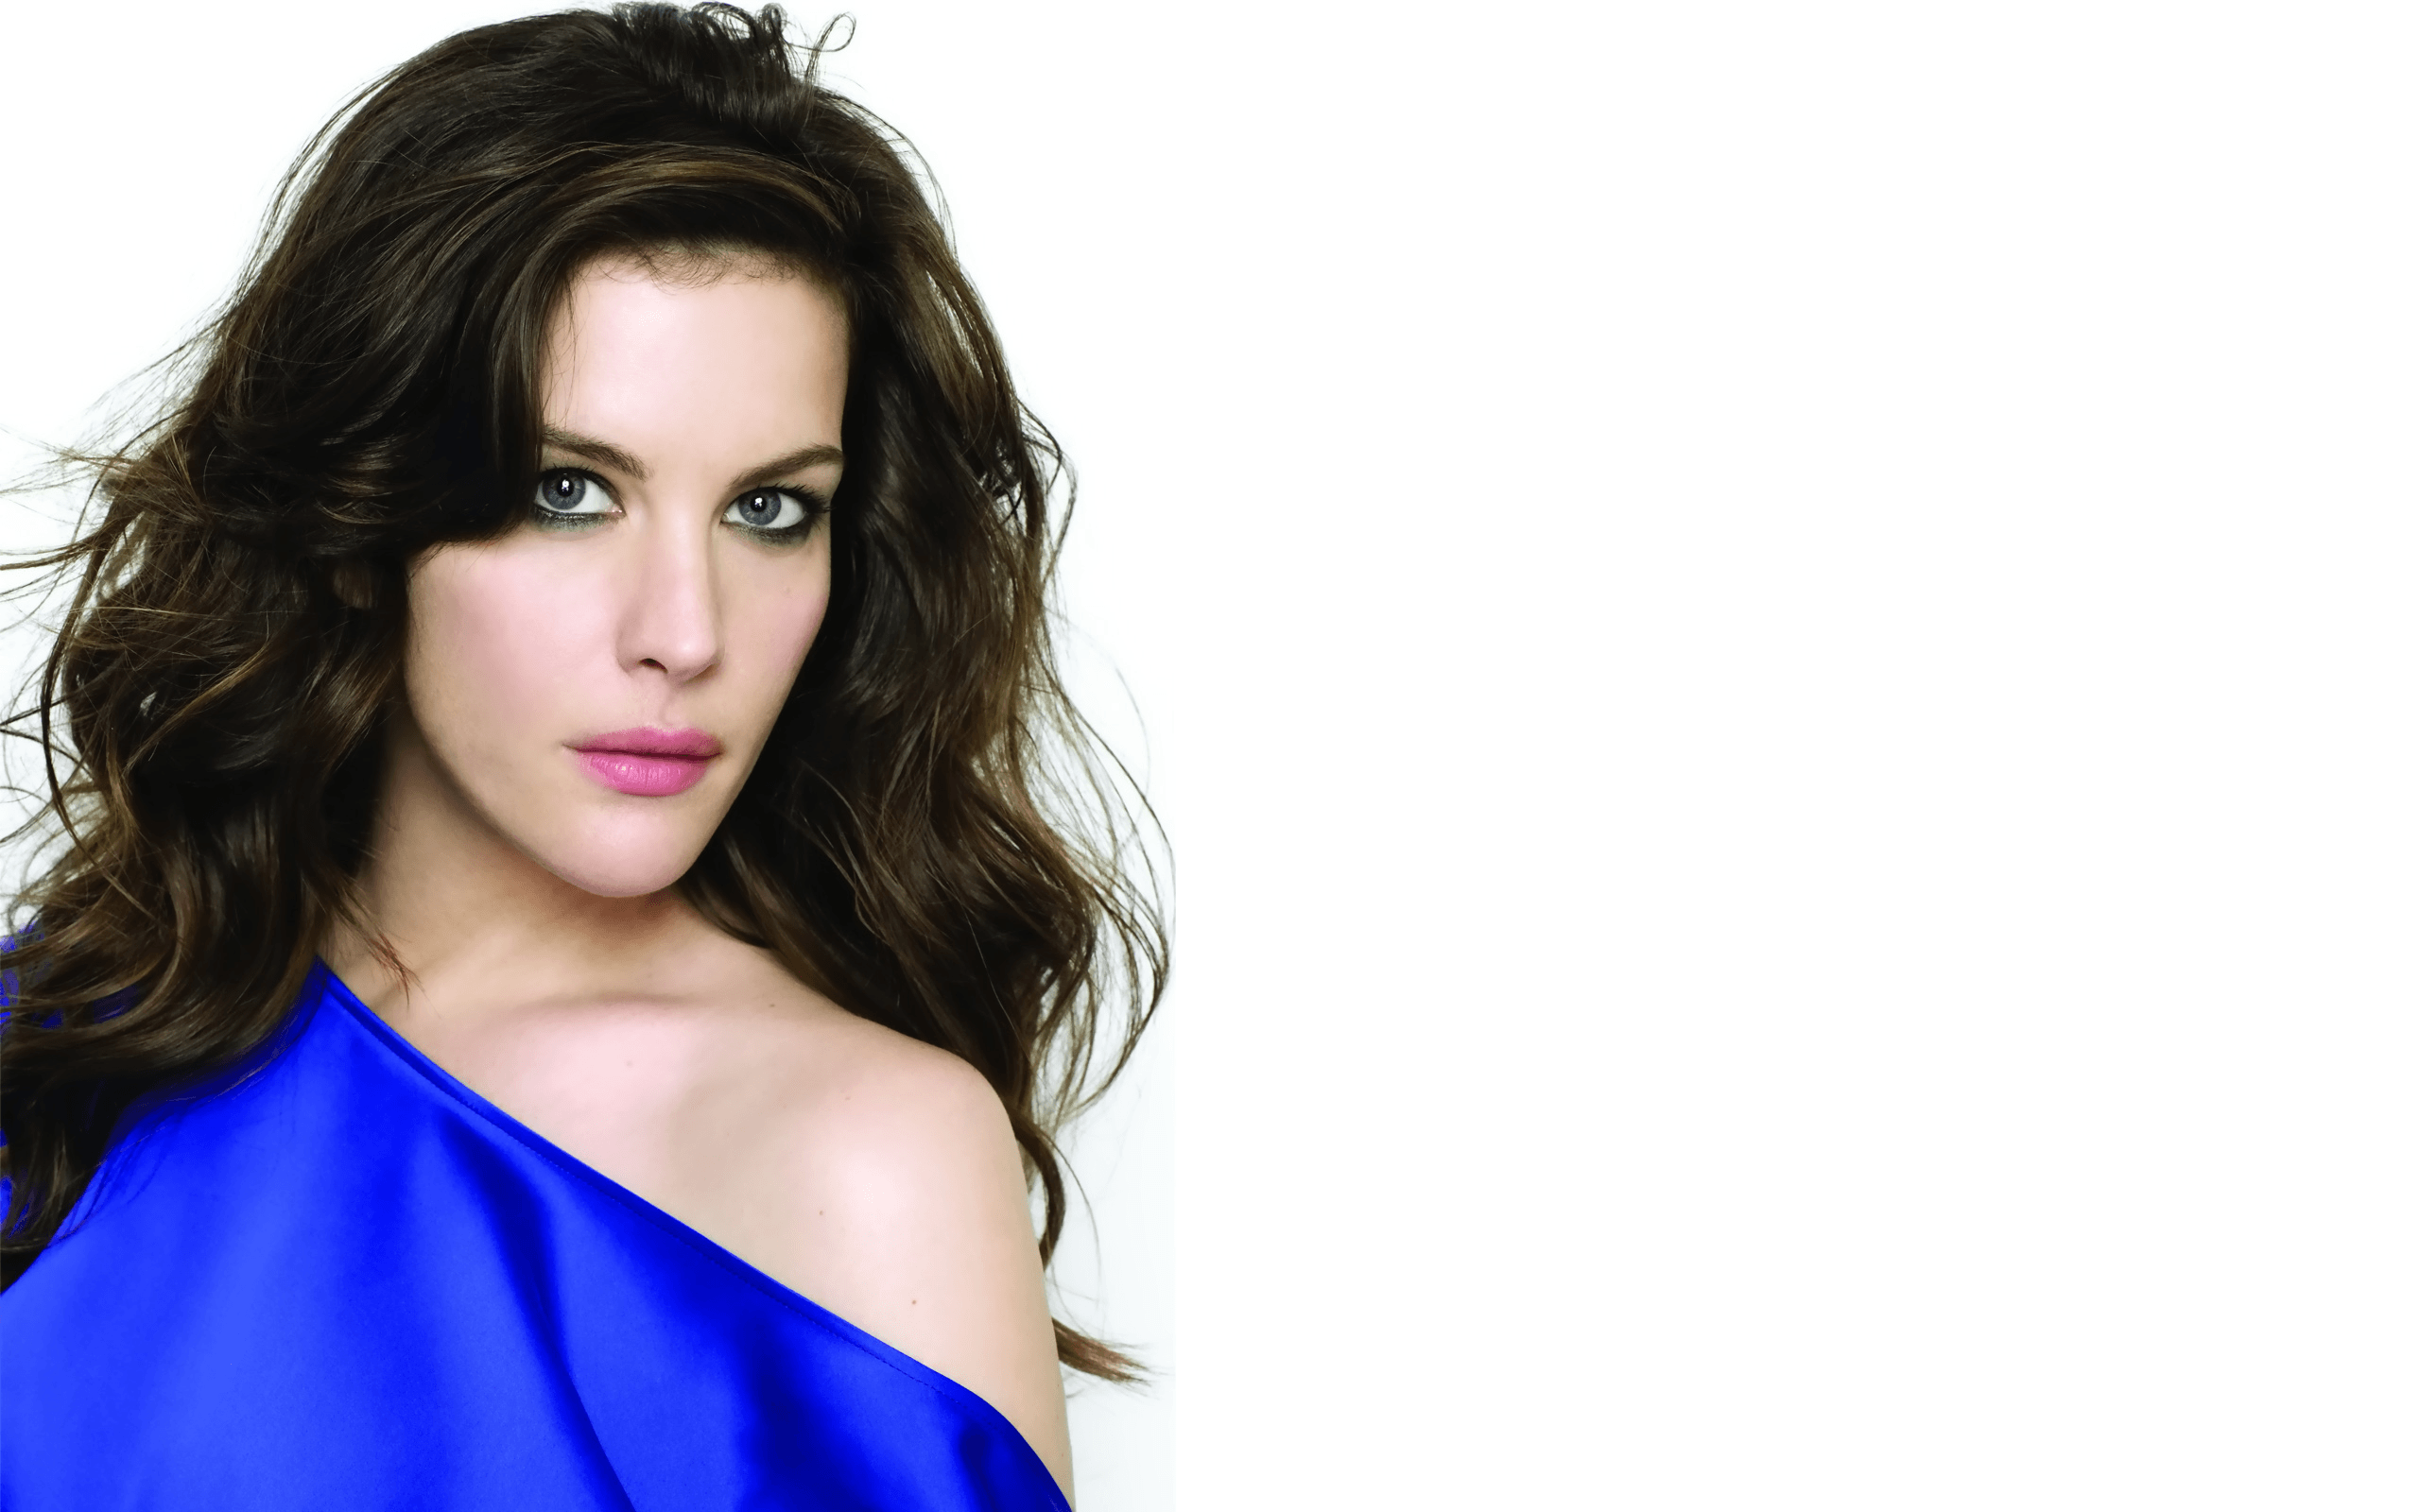 Liv Tyler, HD Celebrities, 4k Wallpapers, Image, Backgrounds